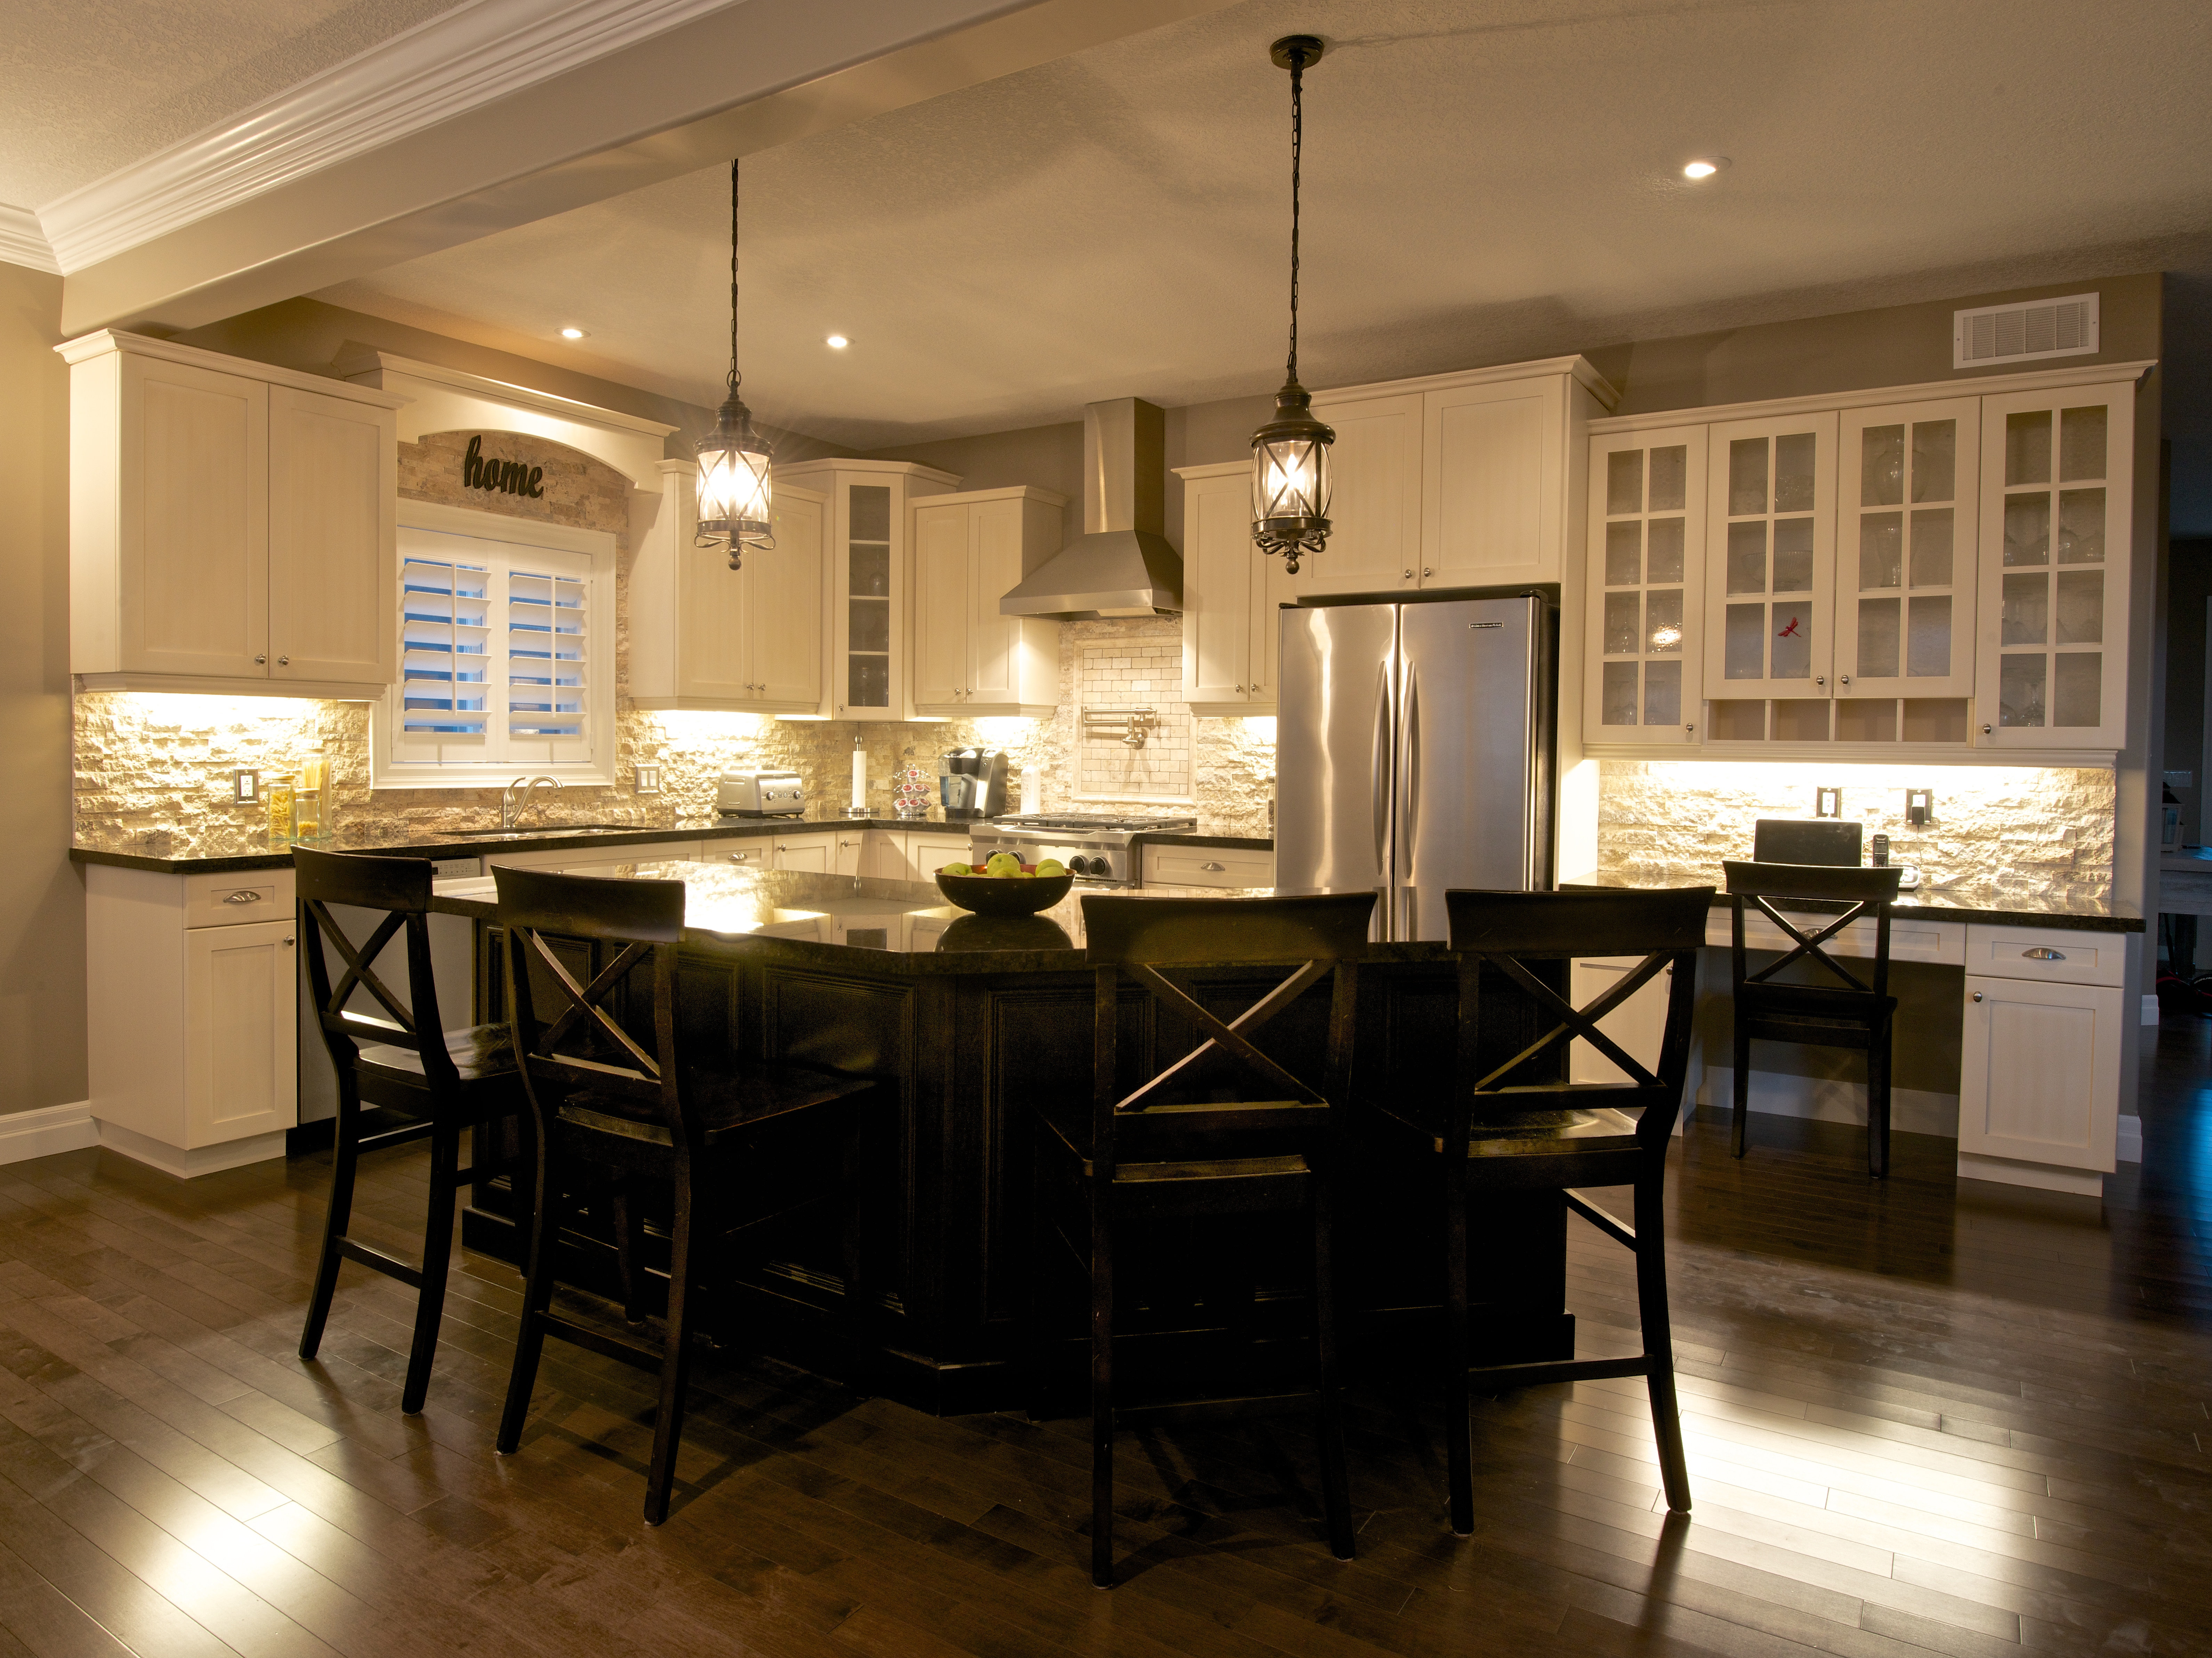 Home Furniture Kitchener Leite Home Solutions Kitchener Waterloo Contractor Home Renovations